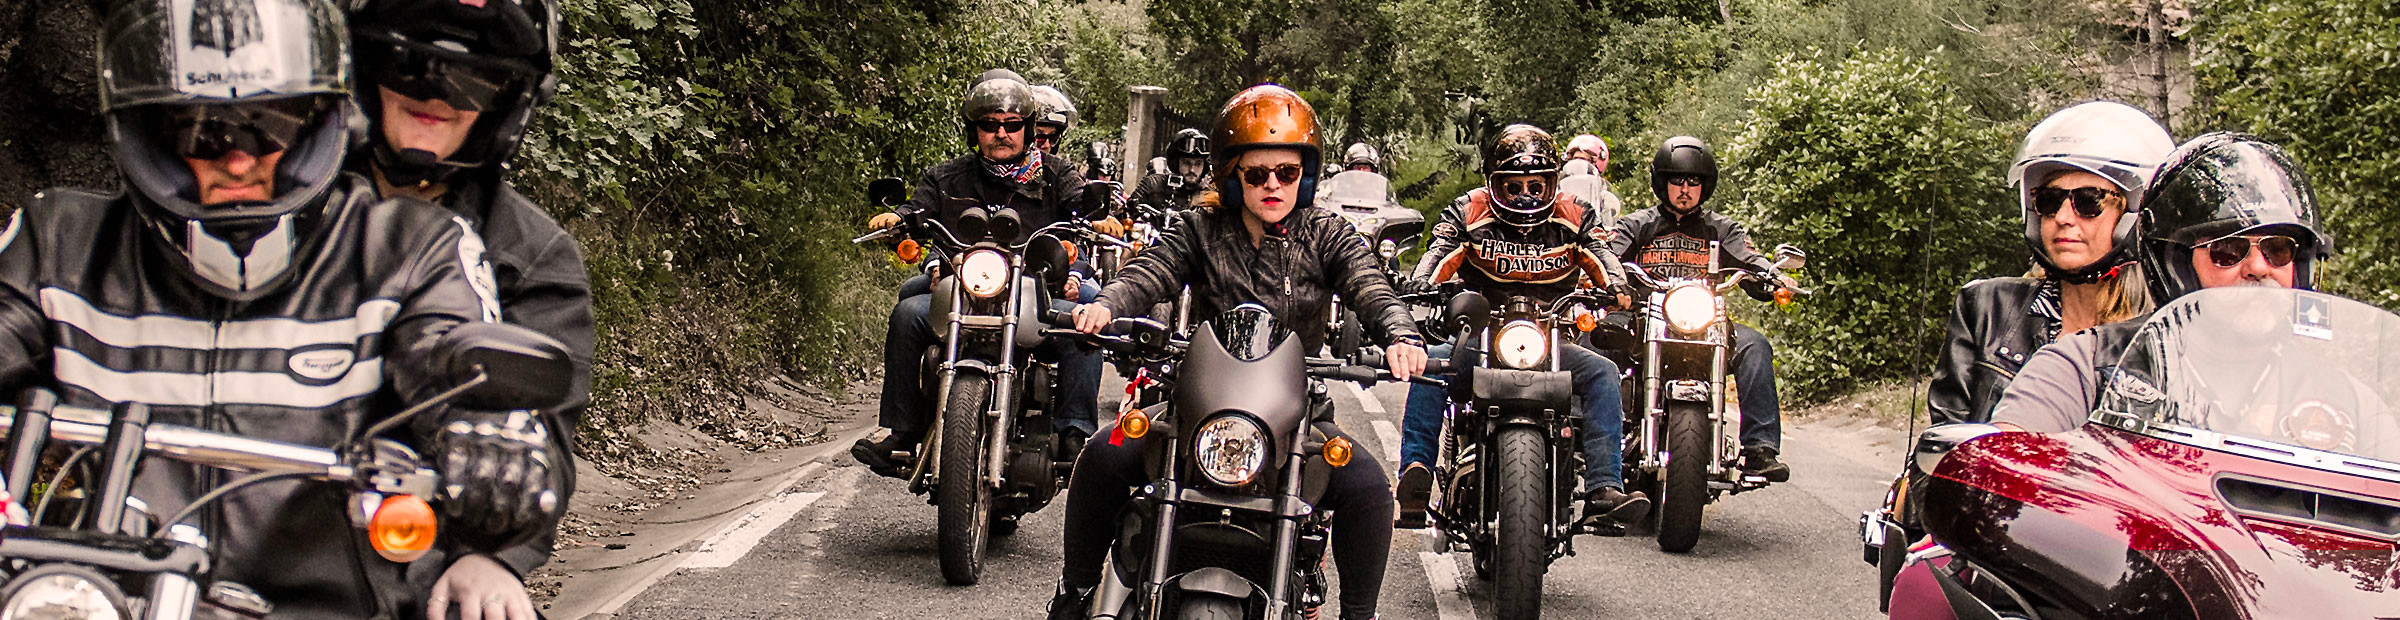 Doc's Harley-Davidson® Events